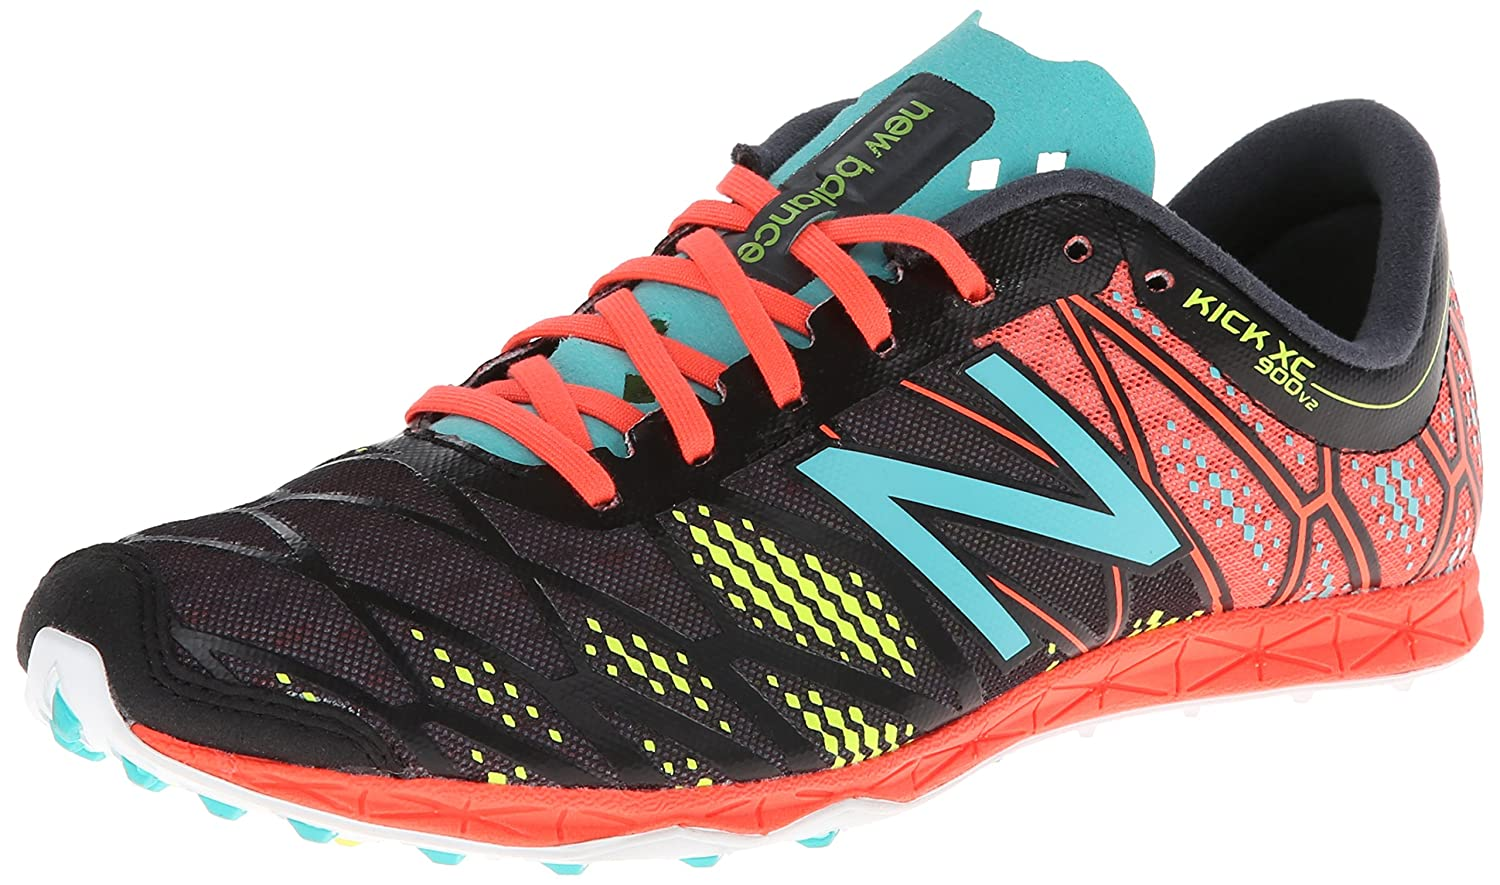 New Balance Men's MXC900 Cross Country Spikeless Shoe new balance футболка chiks